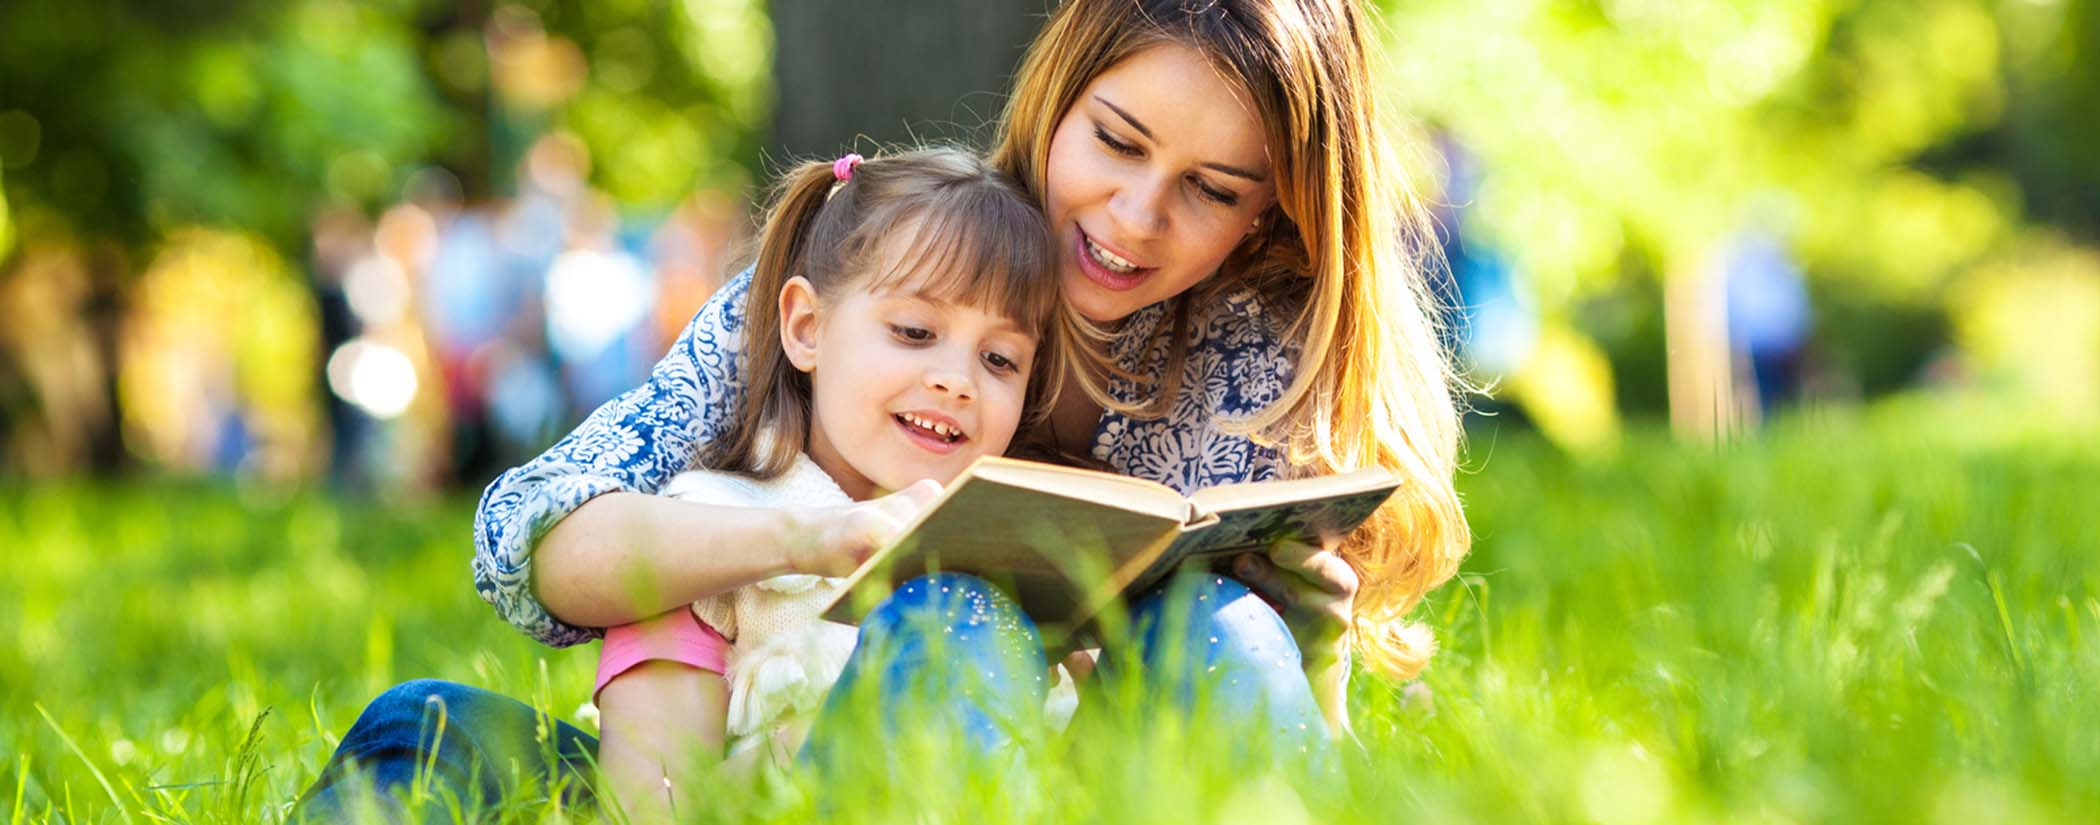 Take time to read with your kids, let the older ones practice reading to you, or act fun stories to the younger children for a very fun time.